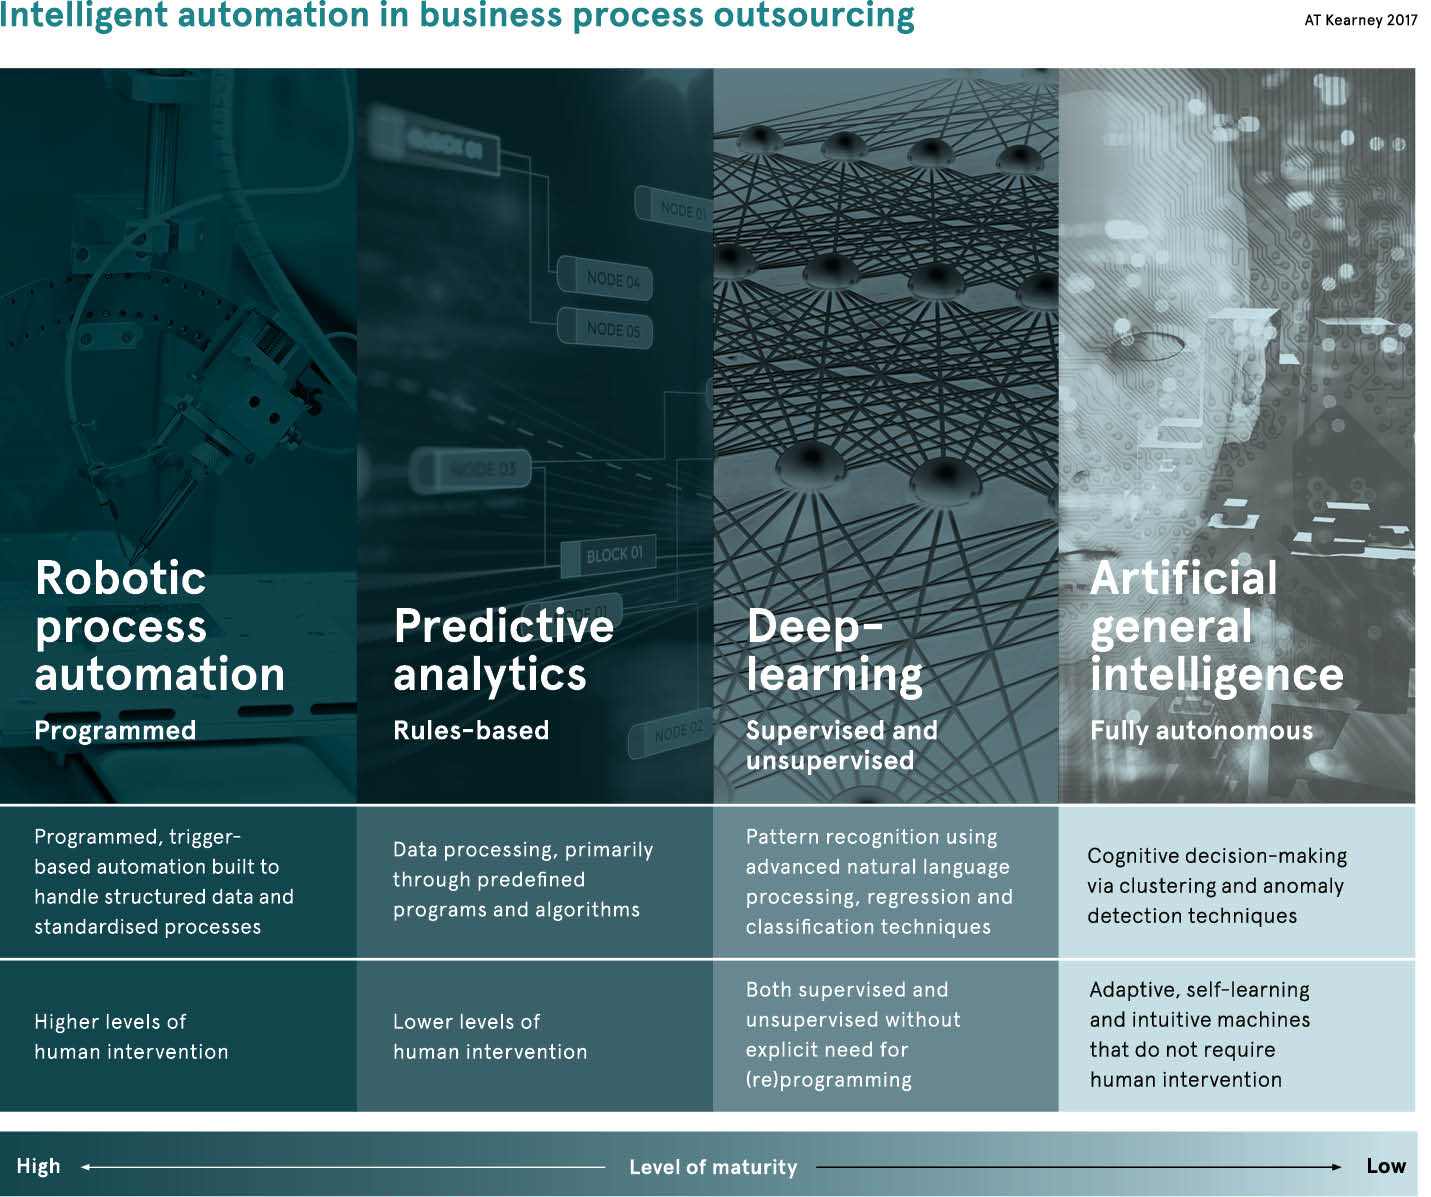 Intelligent automation in business process outsourcing